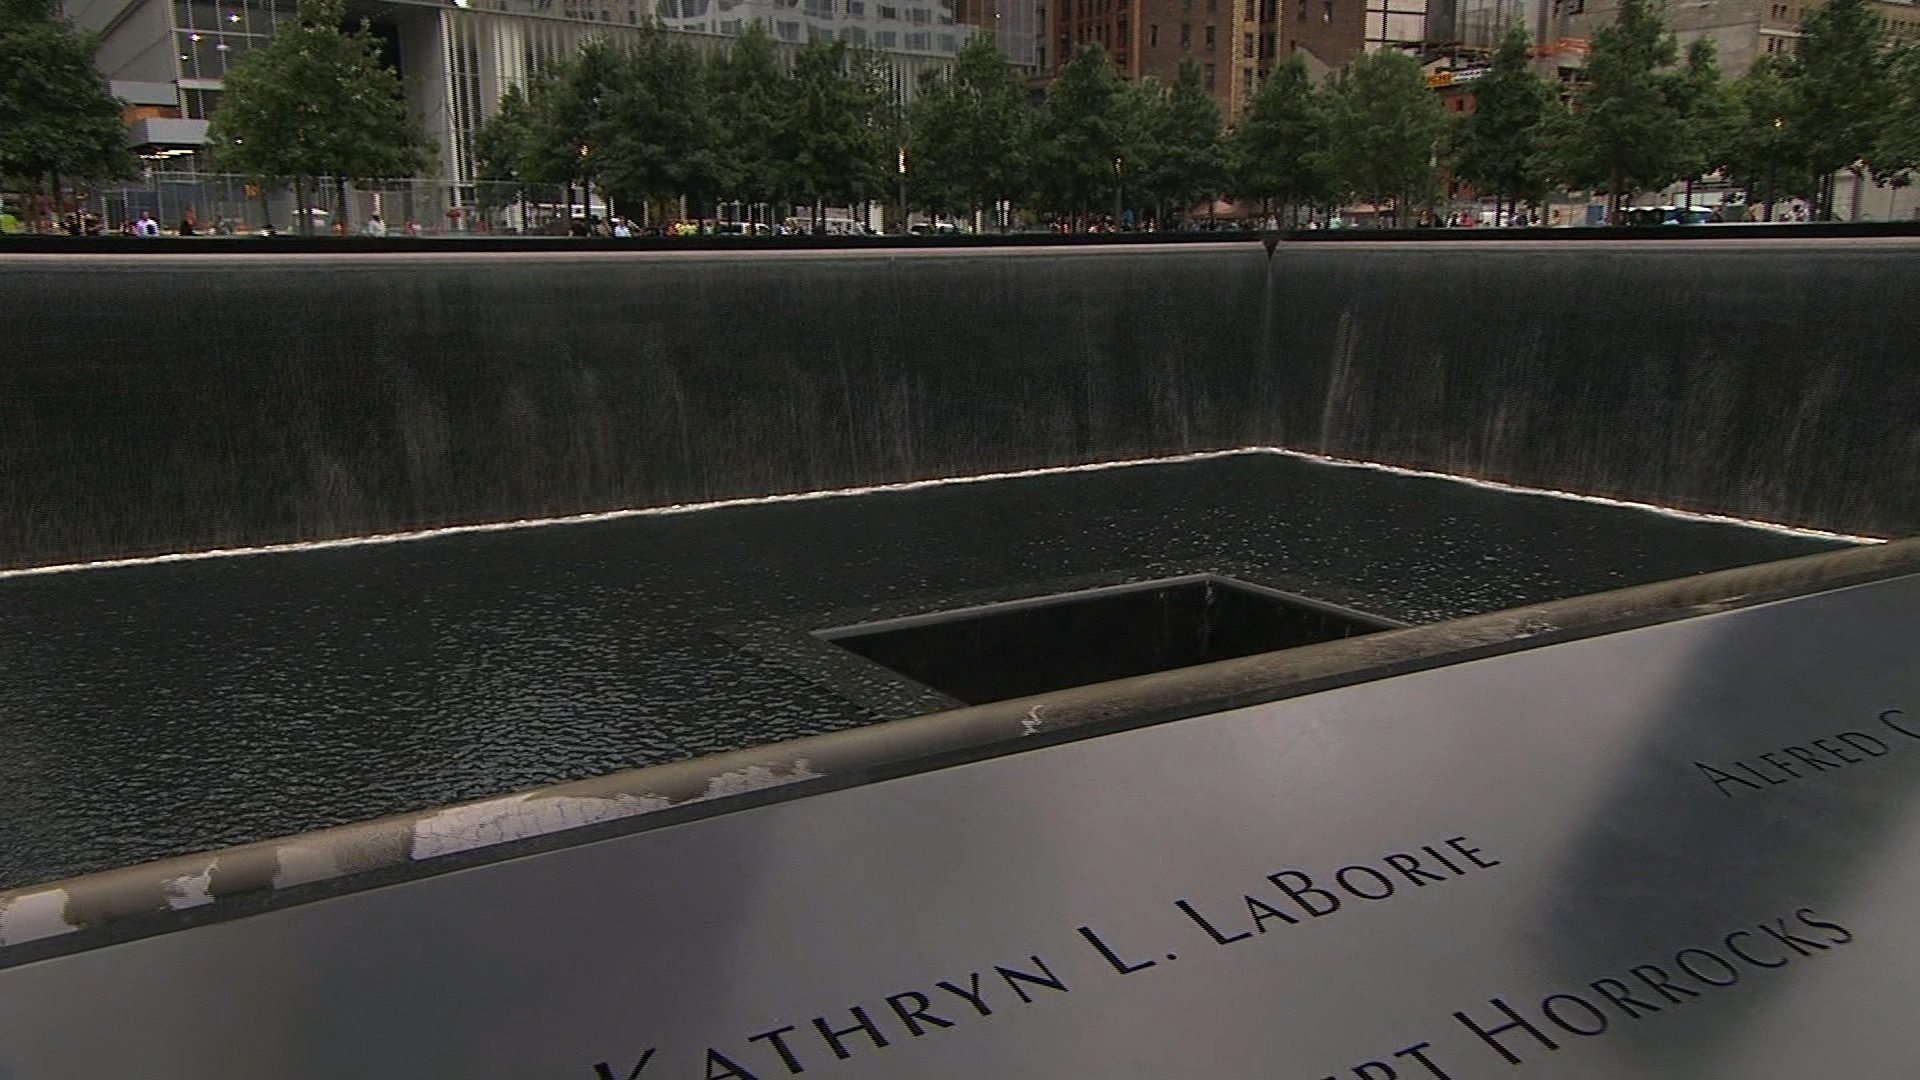 Water flows into one of two reflecting pools during the 13th anniversary of the September 11, 2001 attacks (POOL photo via CNN)